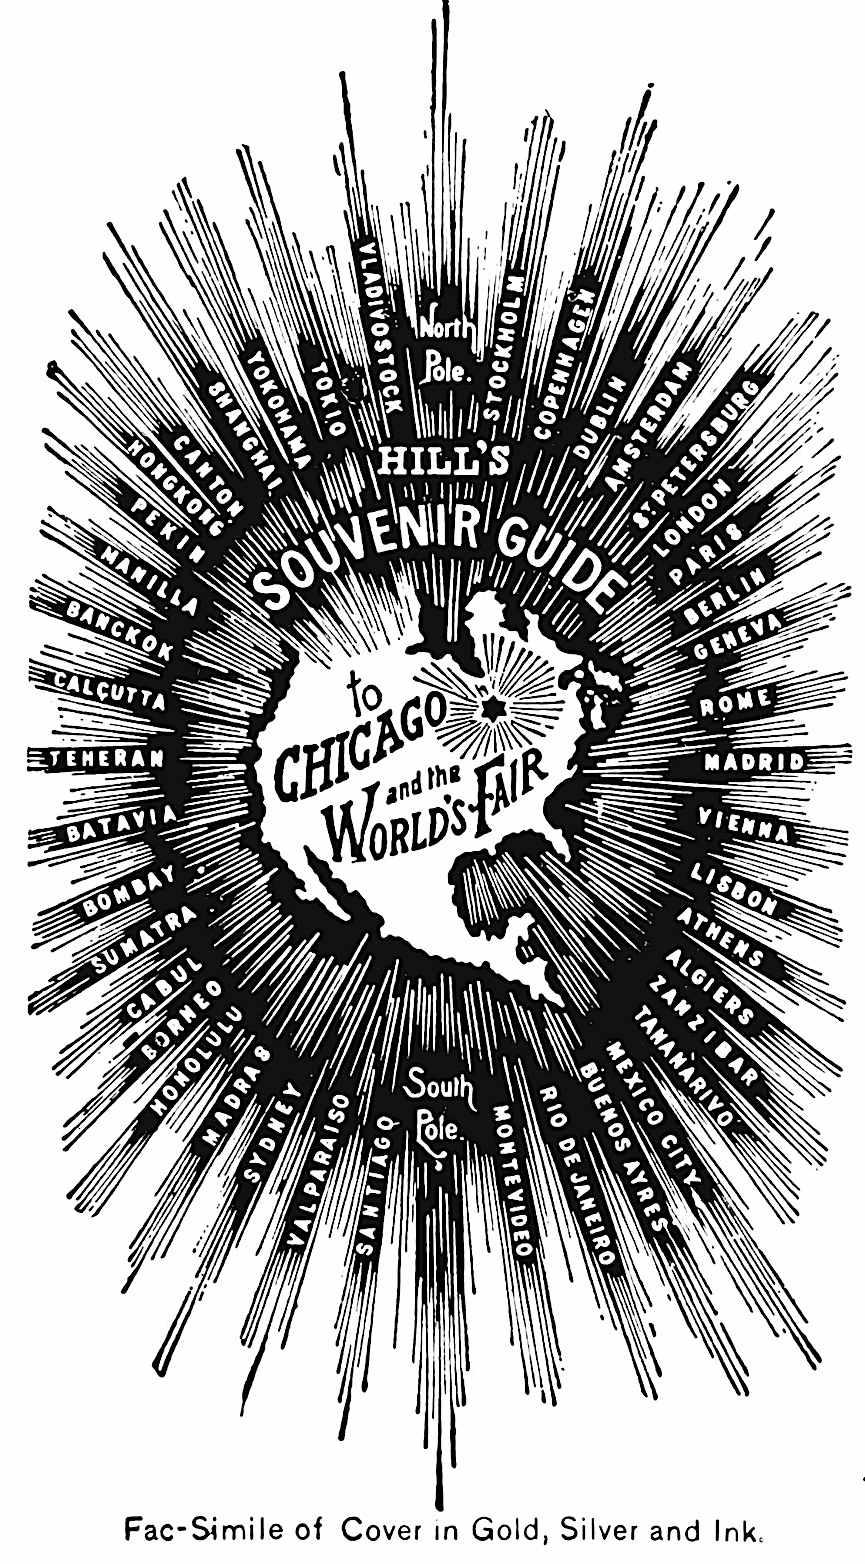 a black and white advertisement showing the cover of a guide book to the 1893 Chicago Word's Fair, a starburst